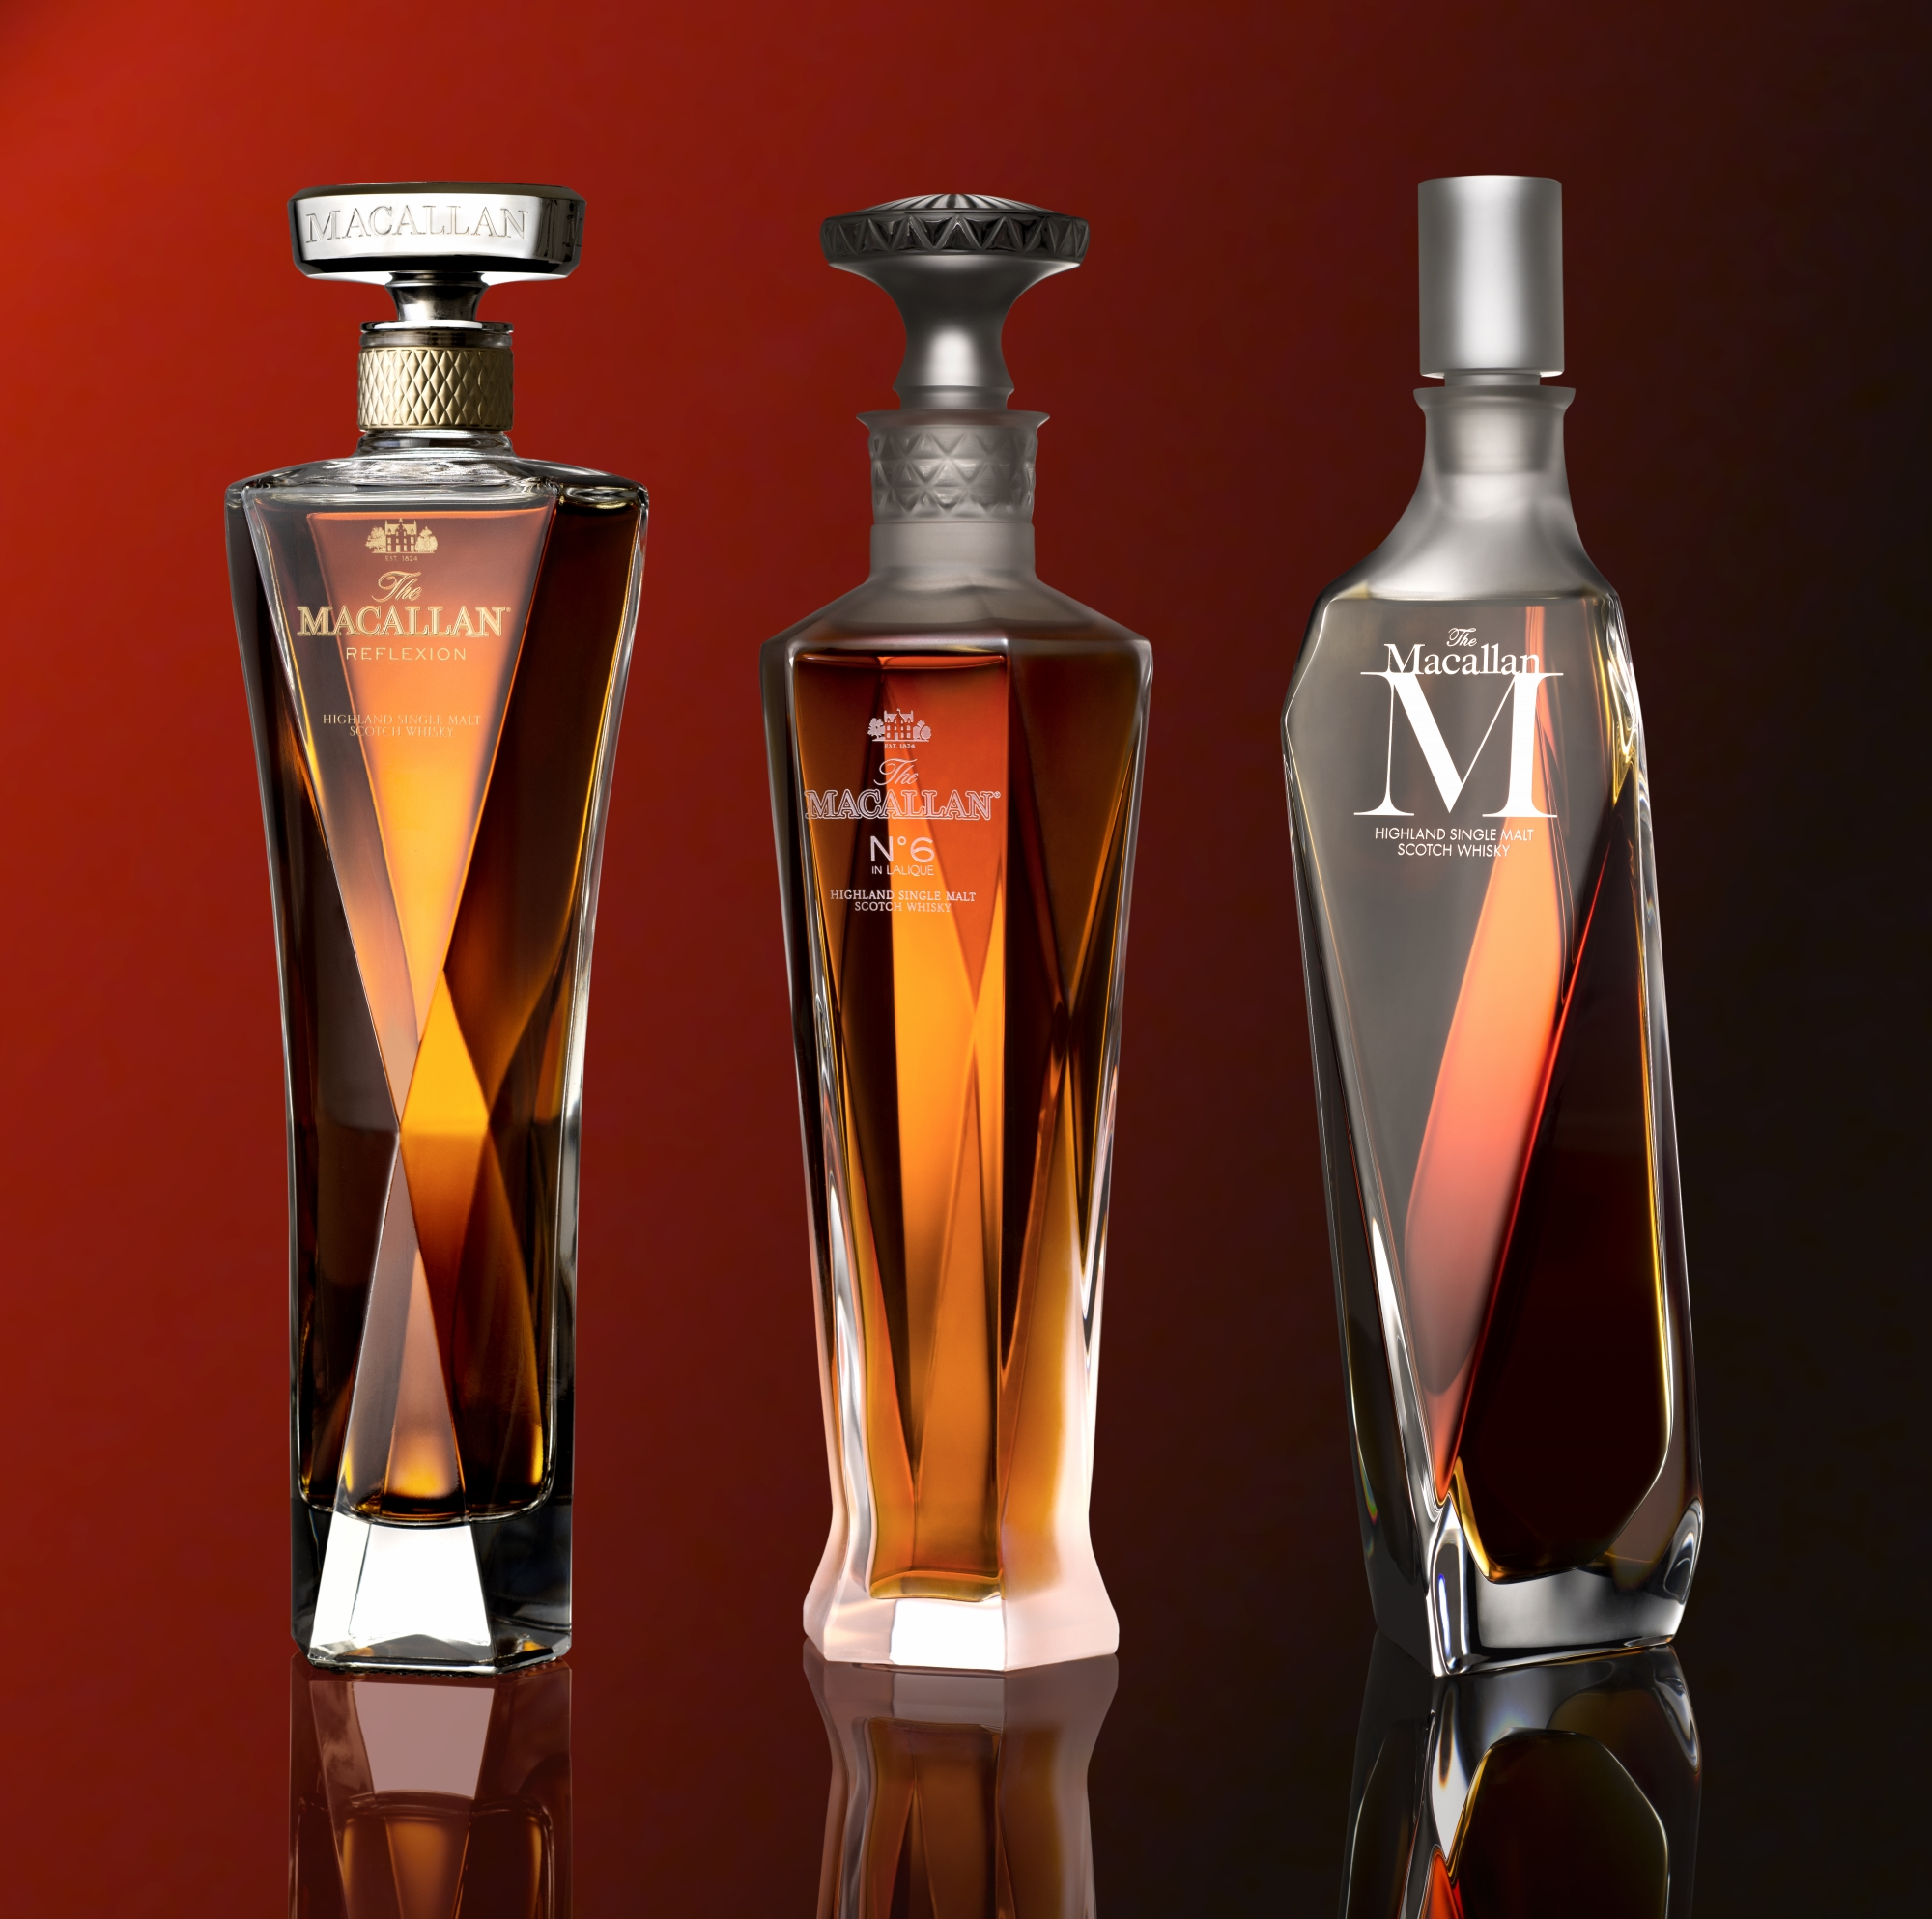 WhiskyIntelligence.com » Blog Archive » THE MACALLAN ...